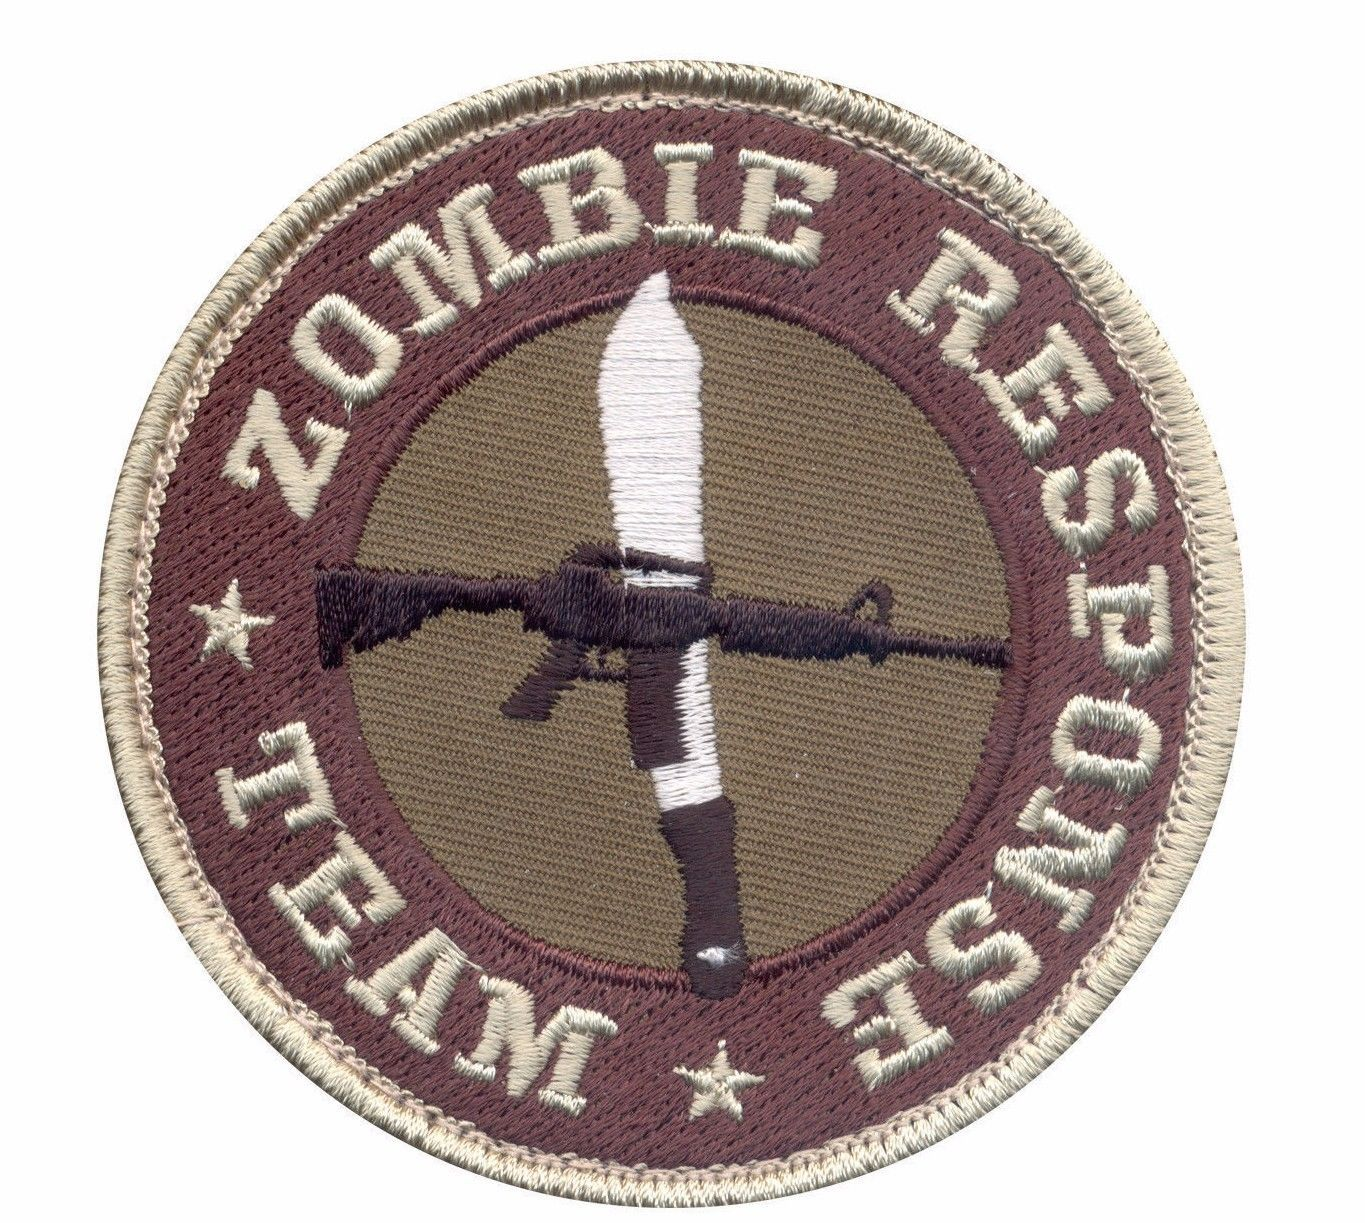 Primary image for MILITARY TACTICAL ZOMBIE RESPONSE TEAM HOOK & LOOP EMBROIDERED PATCH